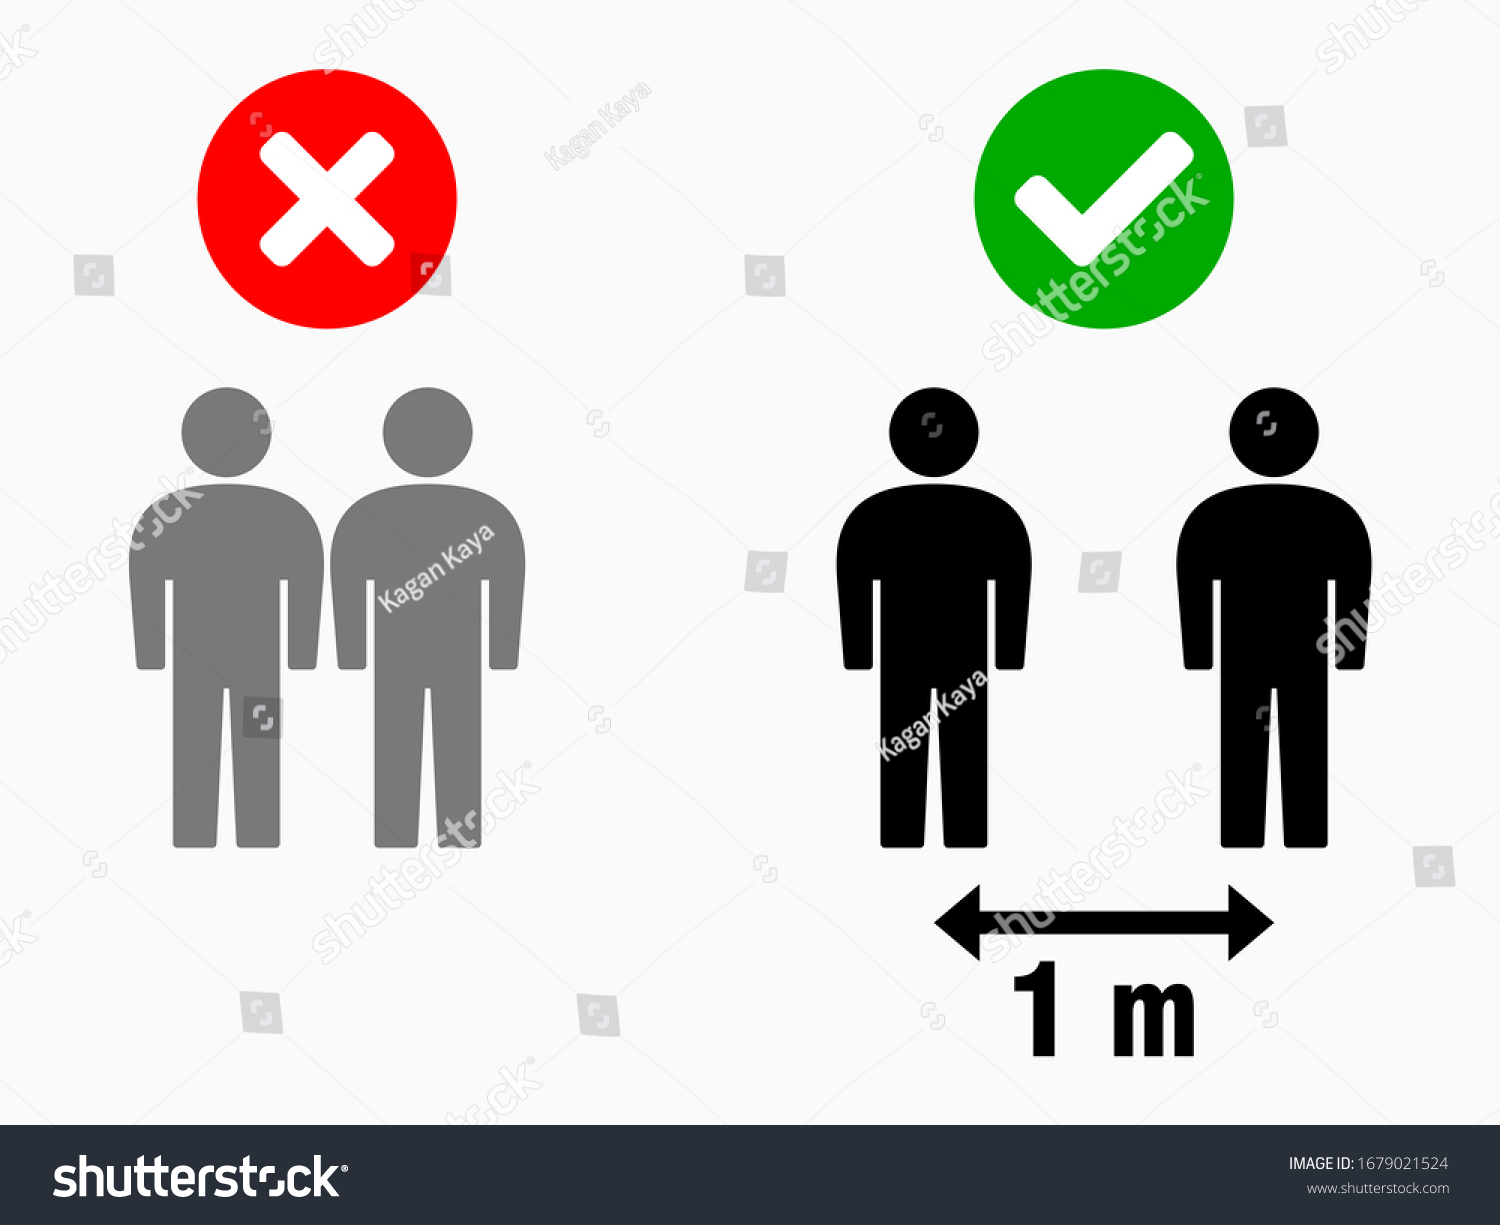 Social Distancing Keep Your Distance 1 m or 1 Metre Infographic Icon. Vector Image.